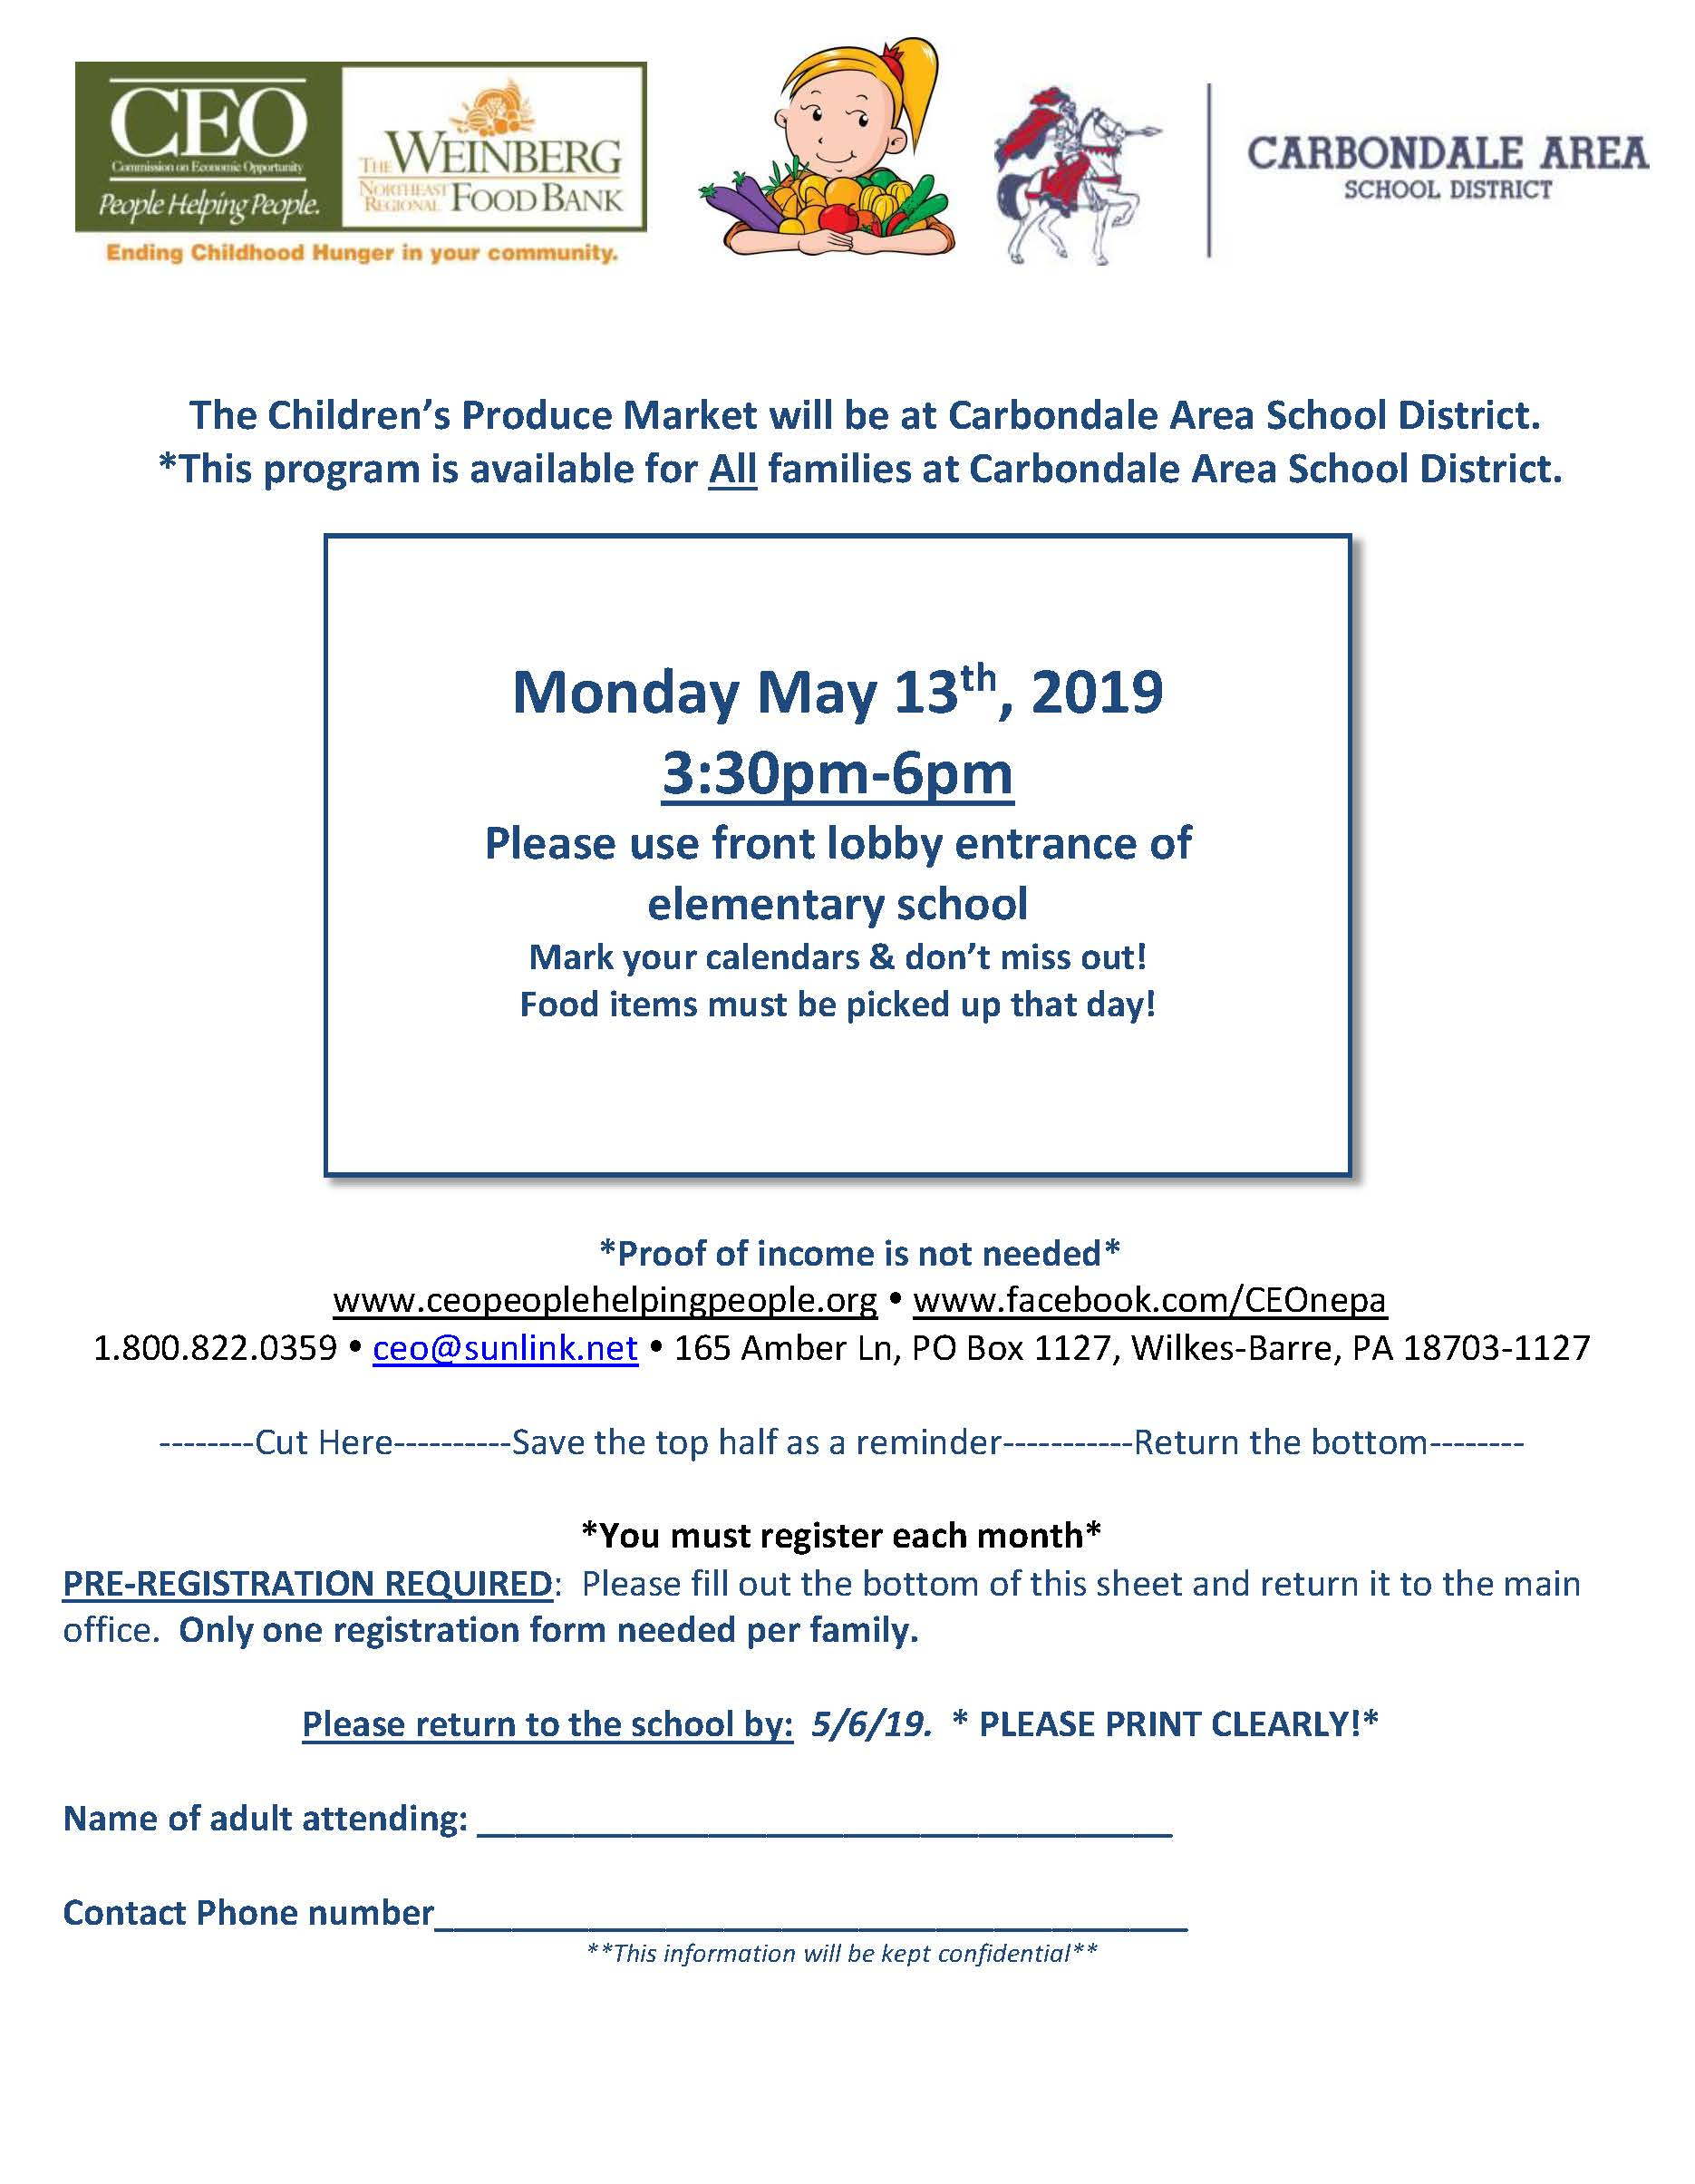 Next Children's Produce Market Monday May 13Th 2019 pertaining to Wilkes Barre Area School District Calendar